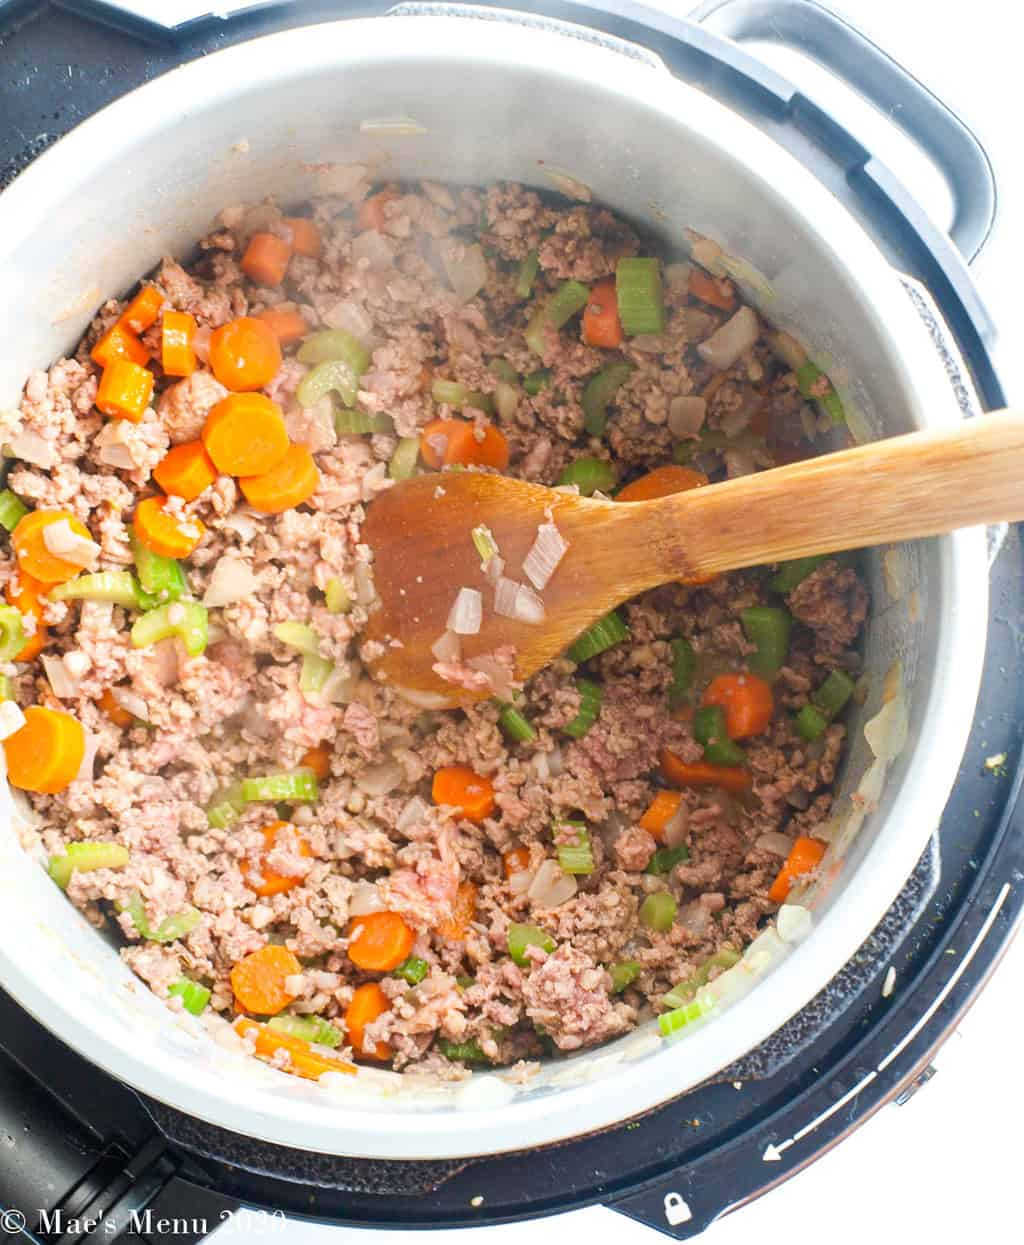 Cooked ground meat and veggies in a pressure cooker